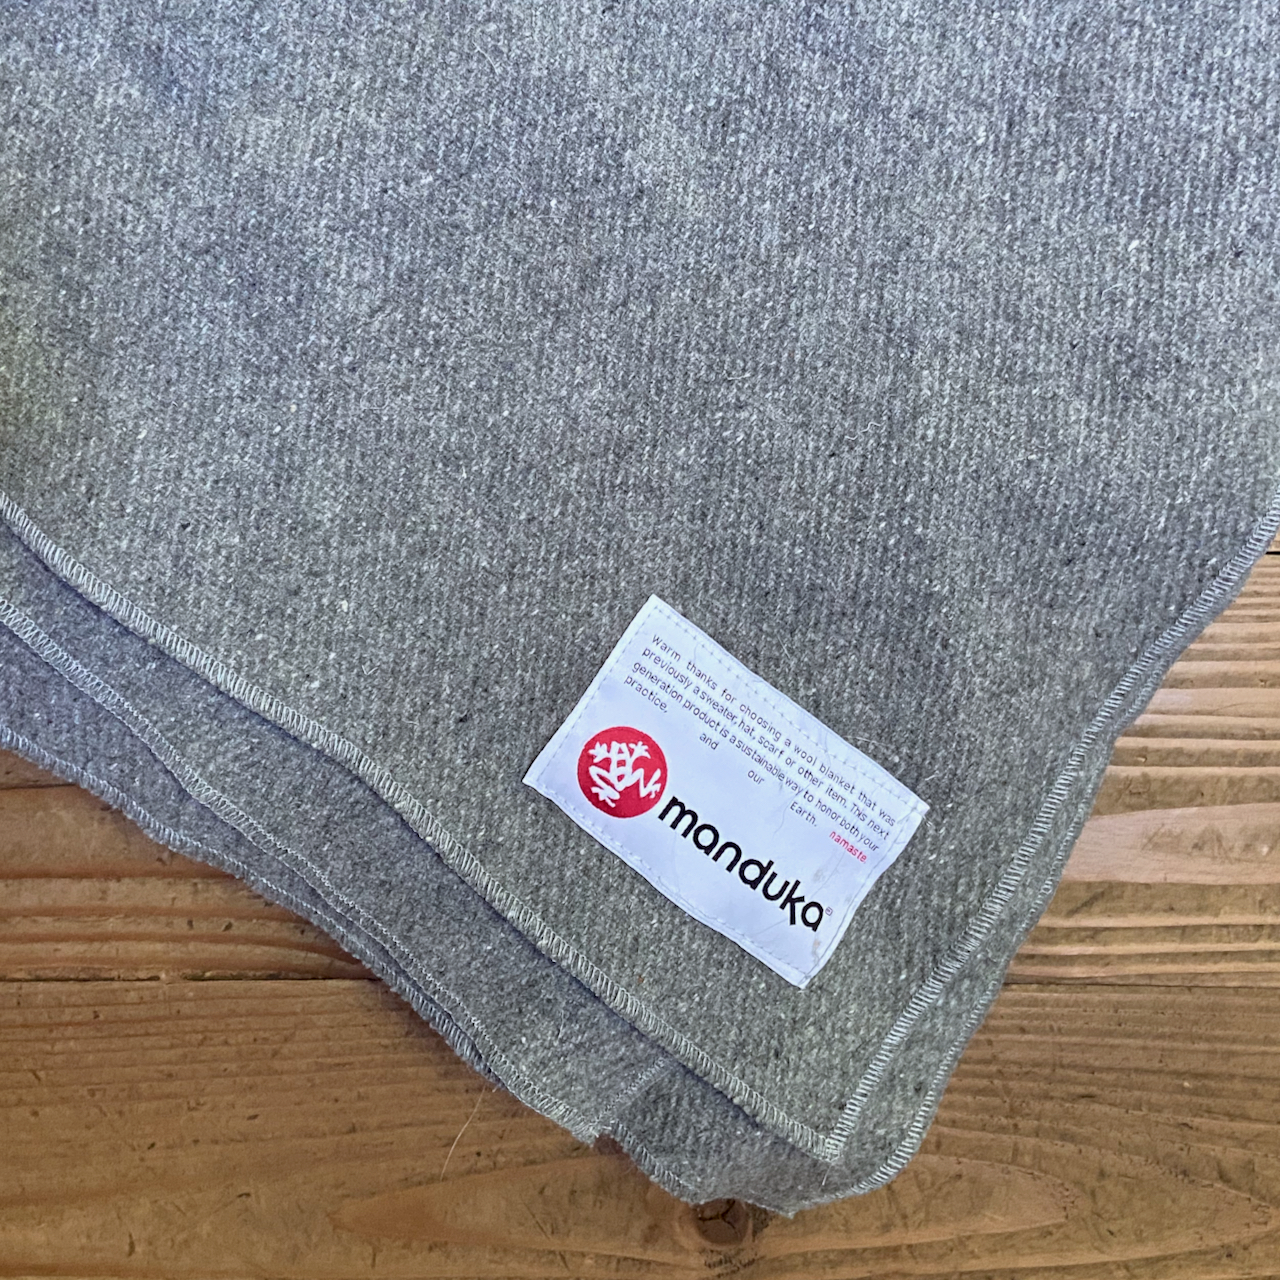 Our Favorite Wool Blanket at MamaSpace Yoga